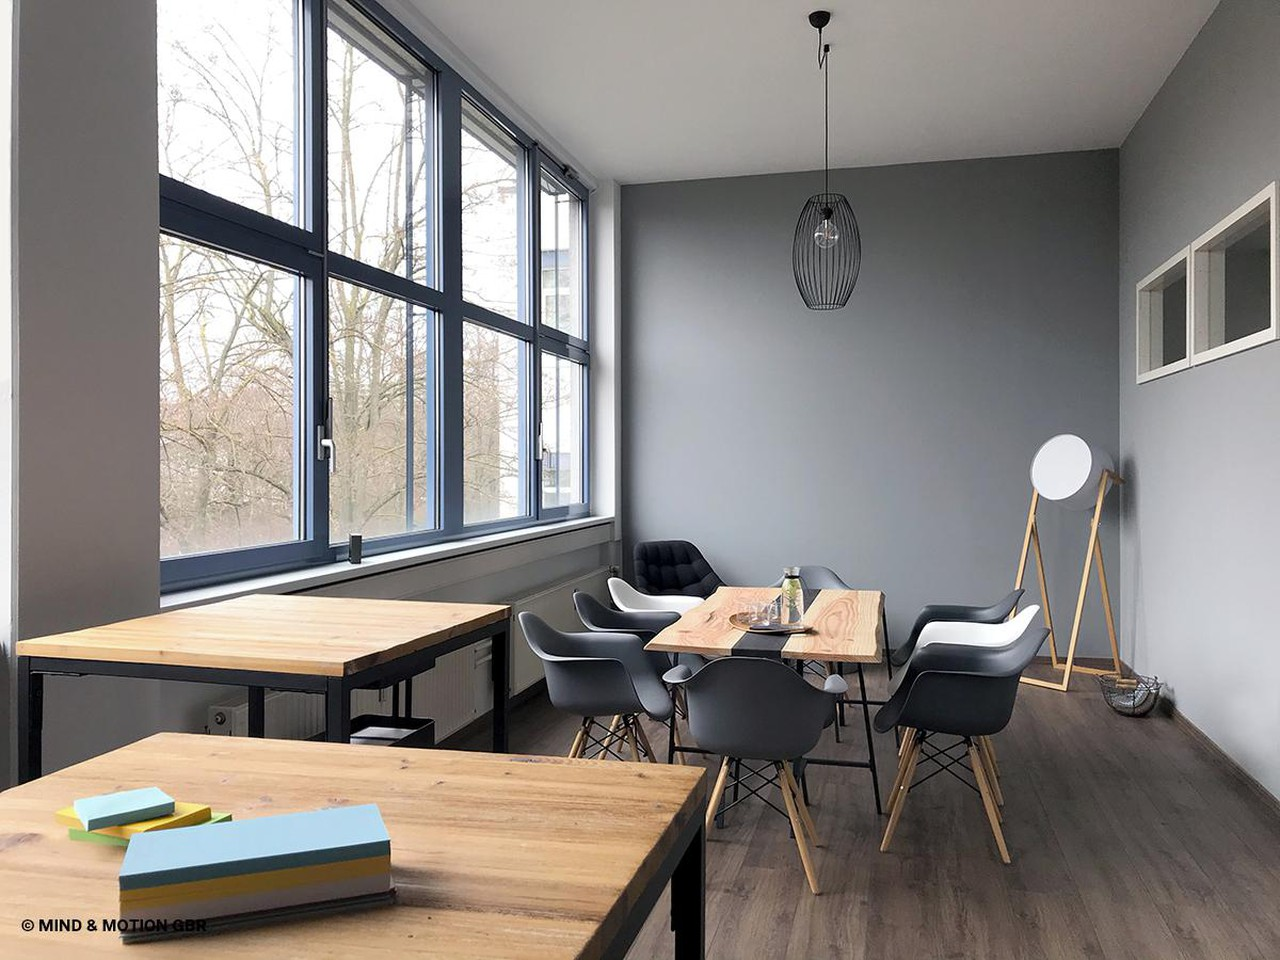 Loft Stuttgart Rent Zuckerfabrik Meeting-raum In Stuttgart Bad-cannstatt | 27 Qm Stuttgart | Spacebase